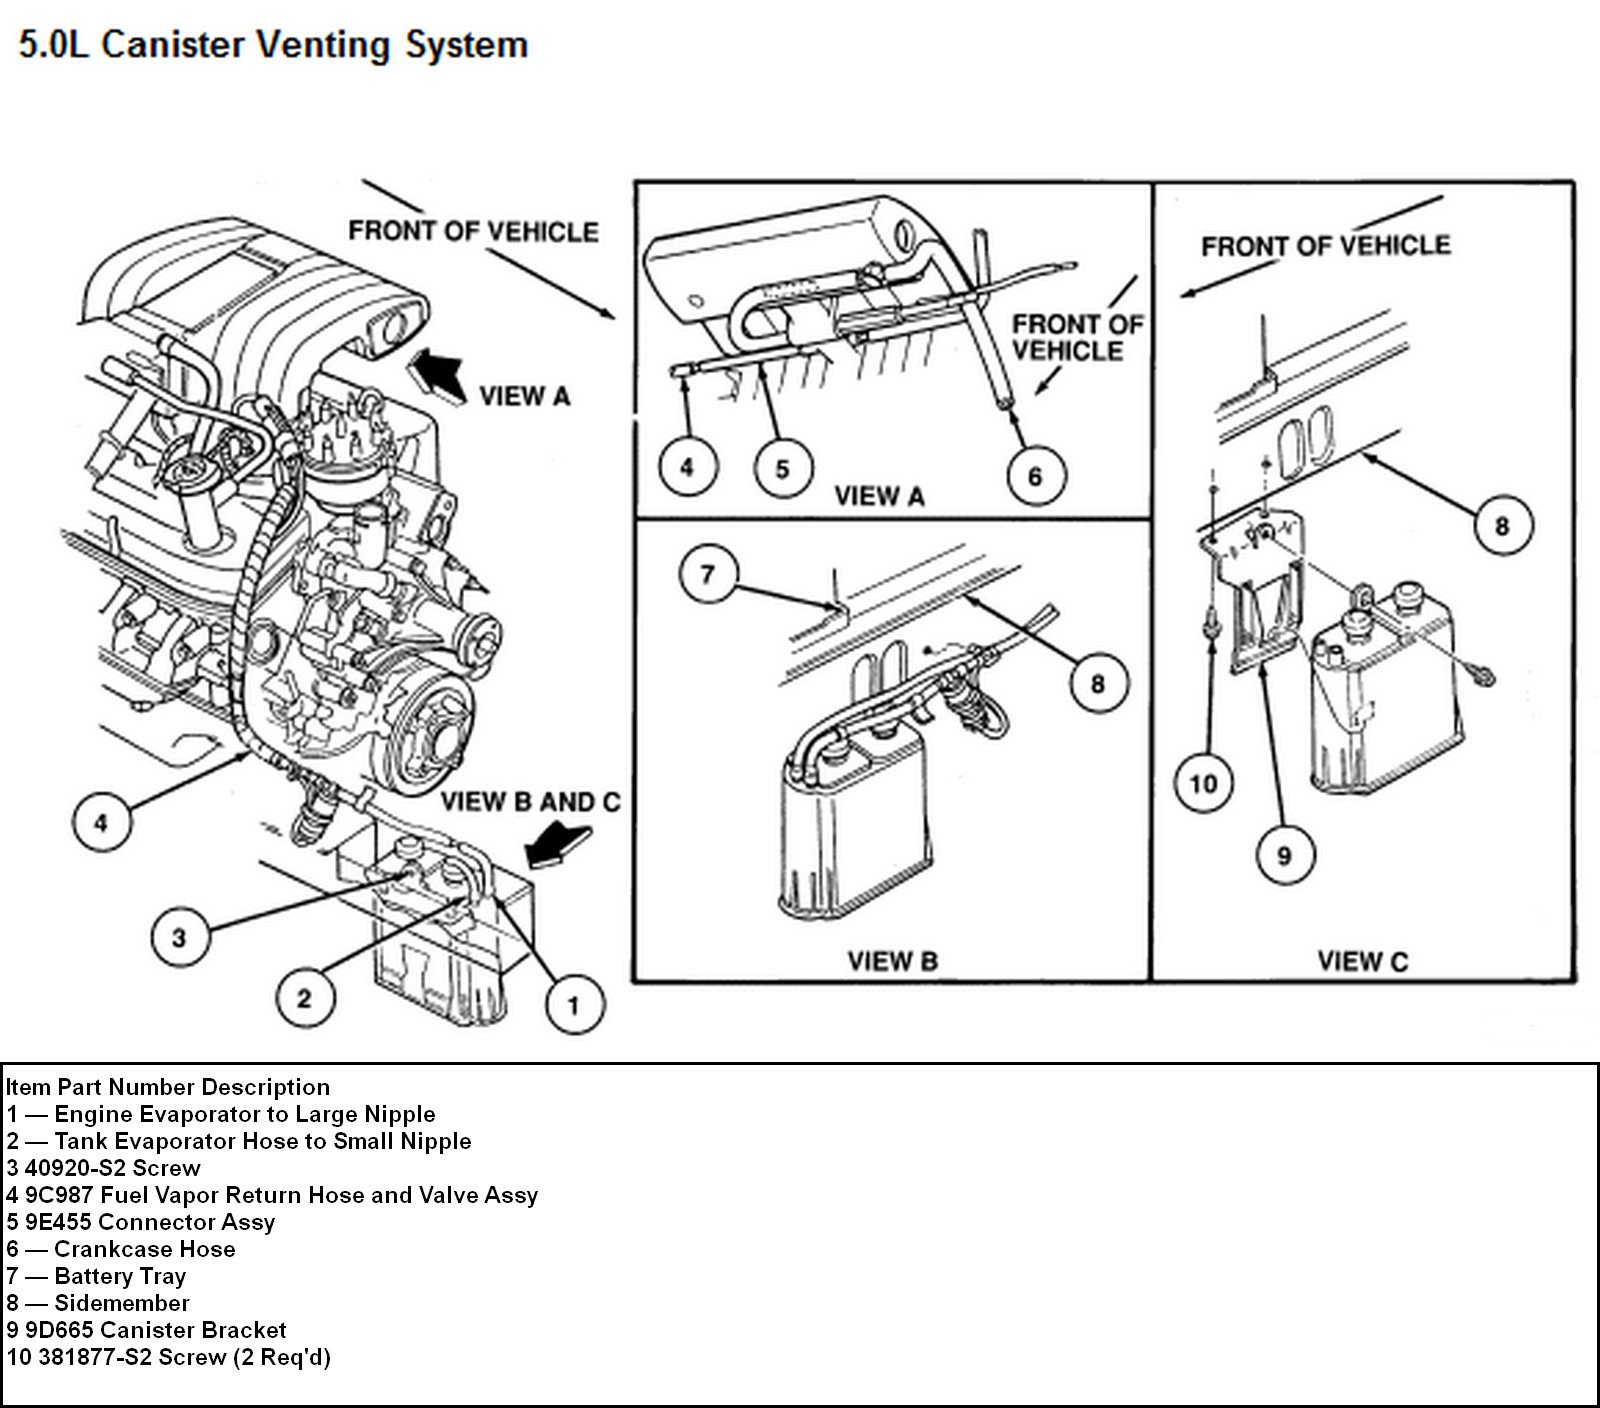 2010 03 05_034838_87 93_Mustang_5.0_EVAP diagrams 1213973 1990 mustang wiring diagram mustang faq wiring 93 mustang wiring diagram at mifinder.co